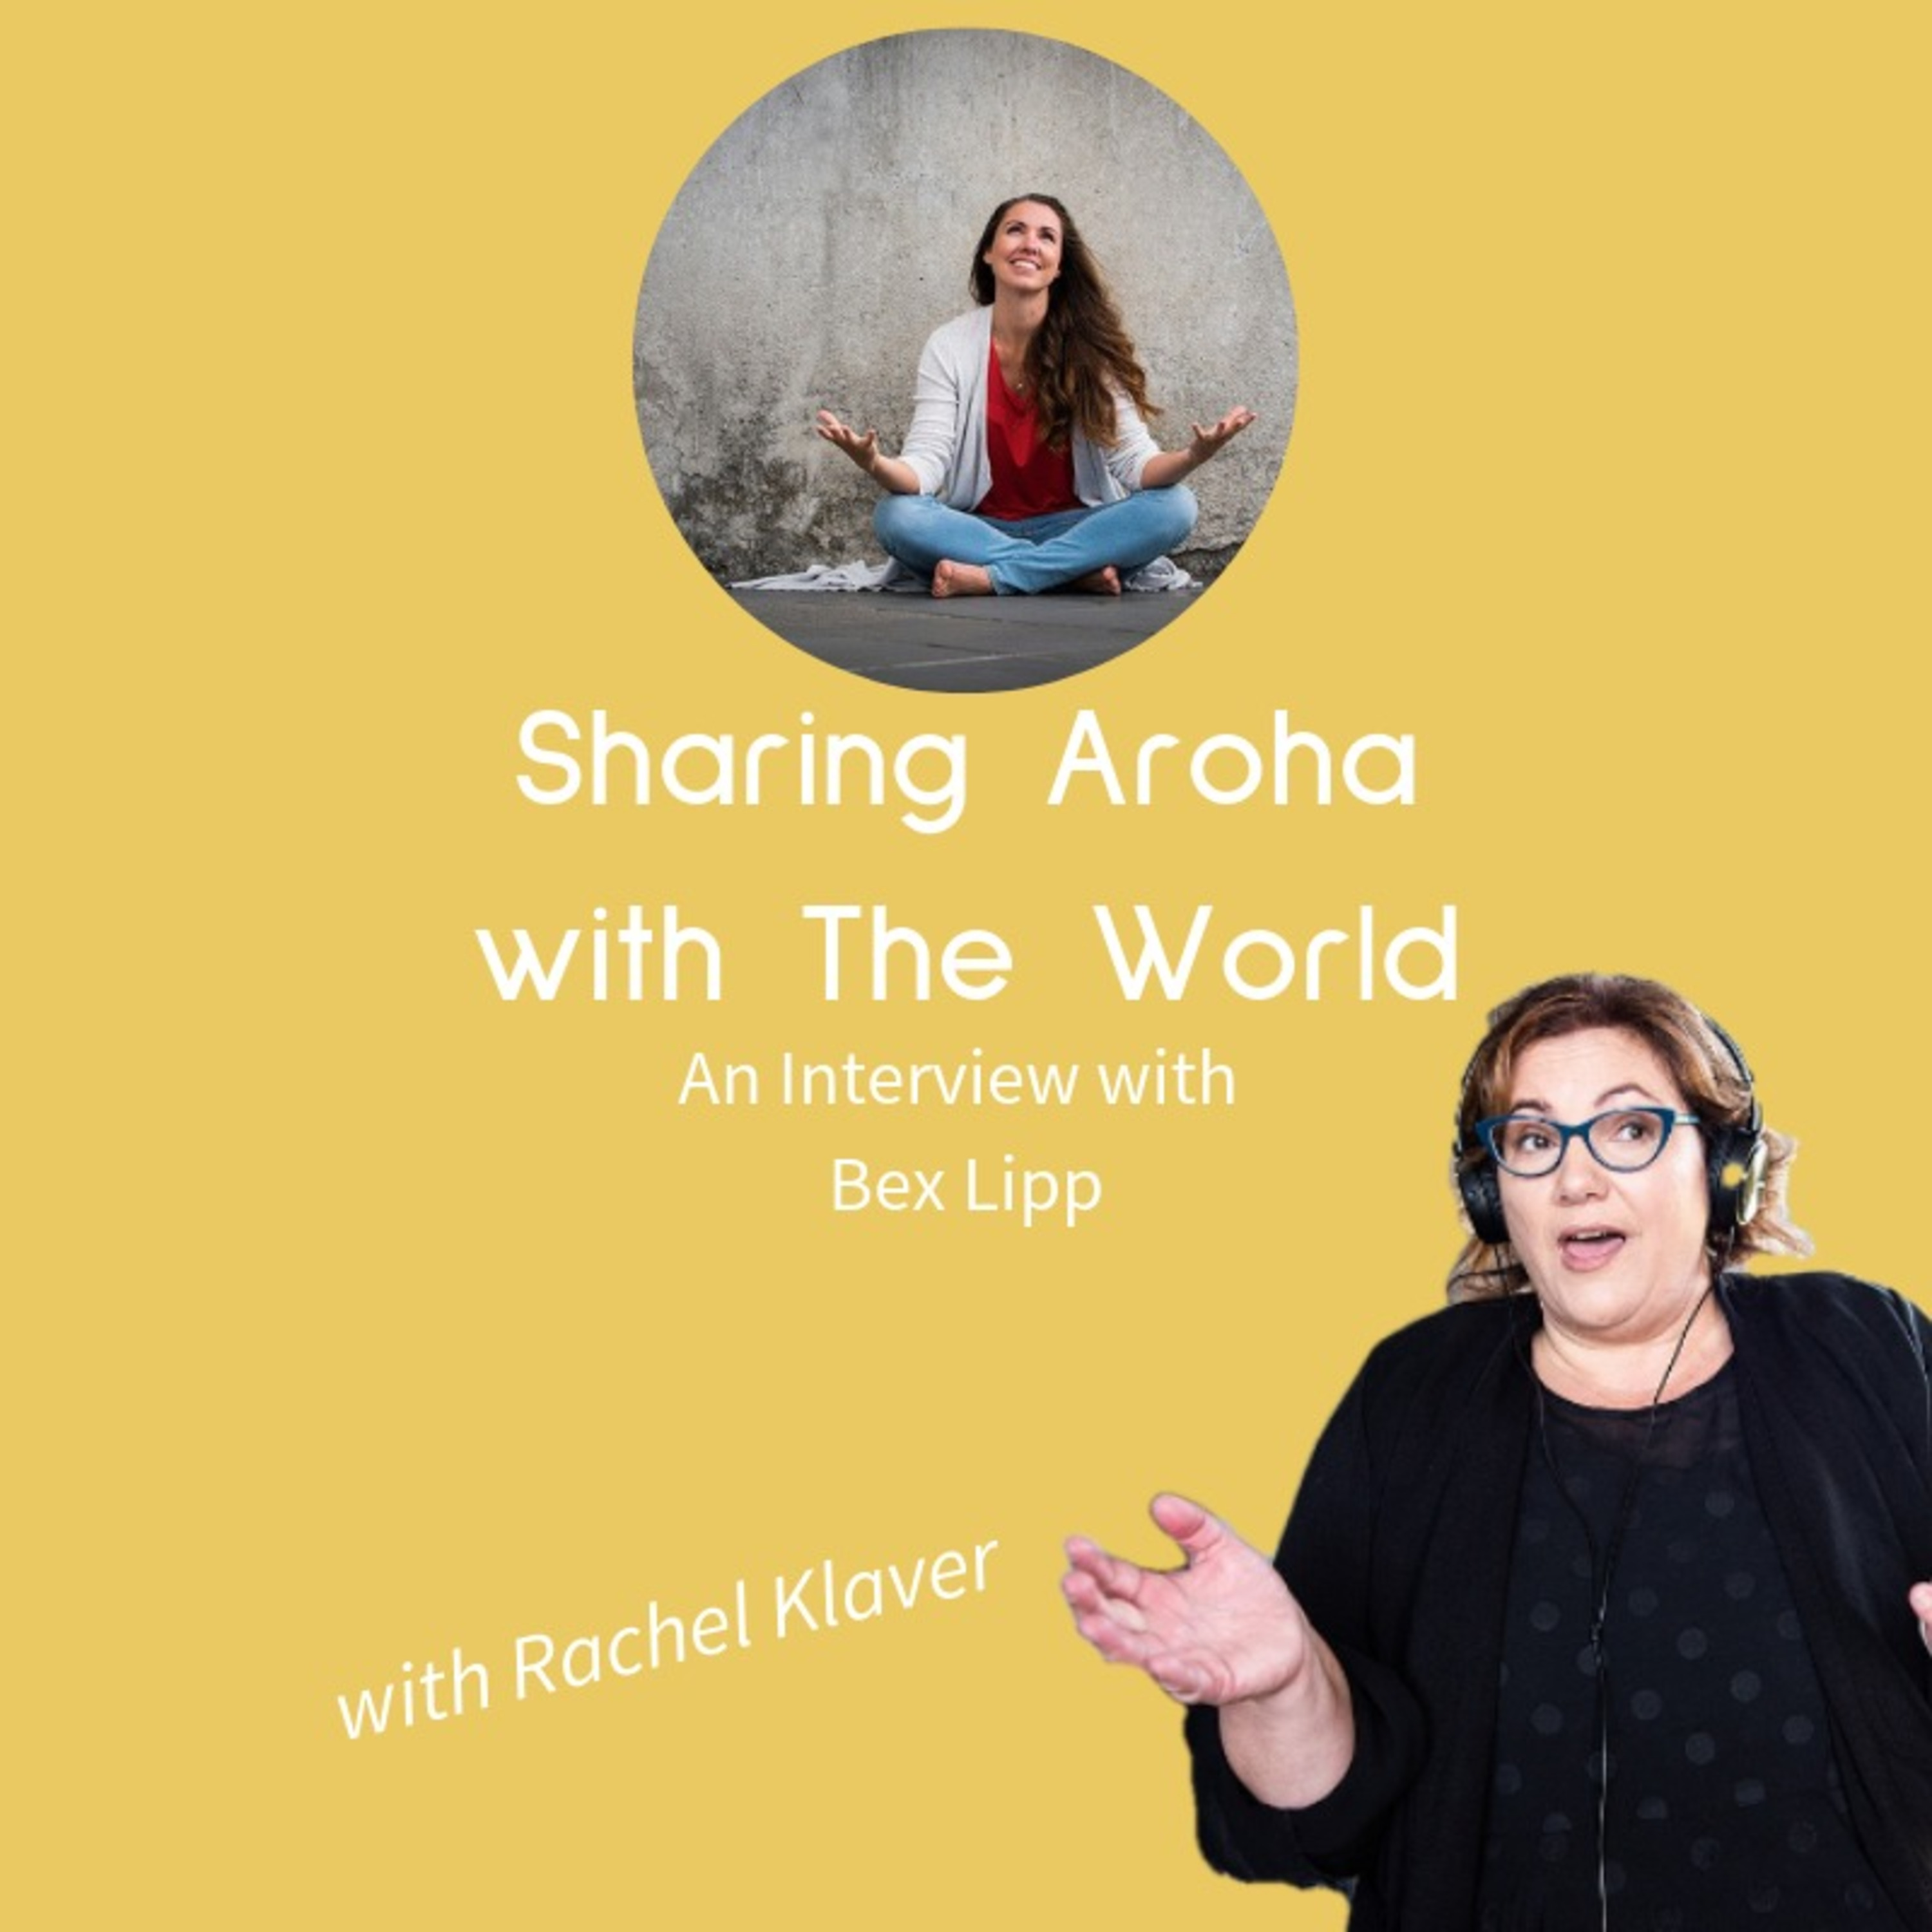 Sharing Aroha with the World - an Interview with Bex Lipp